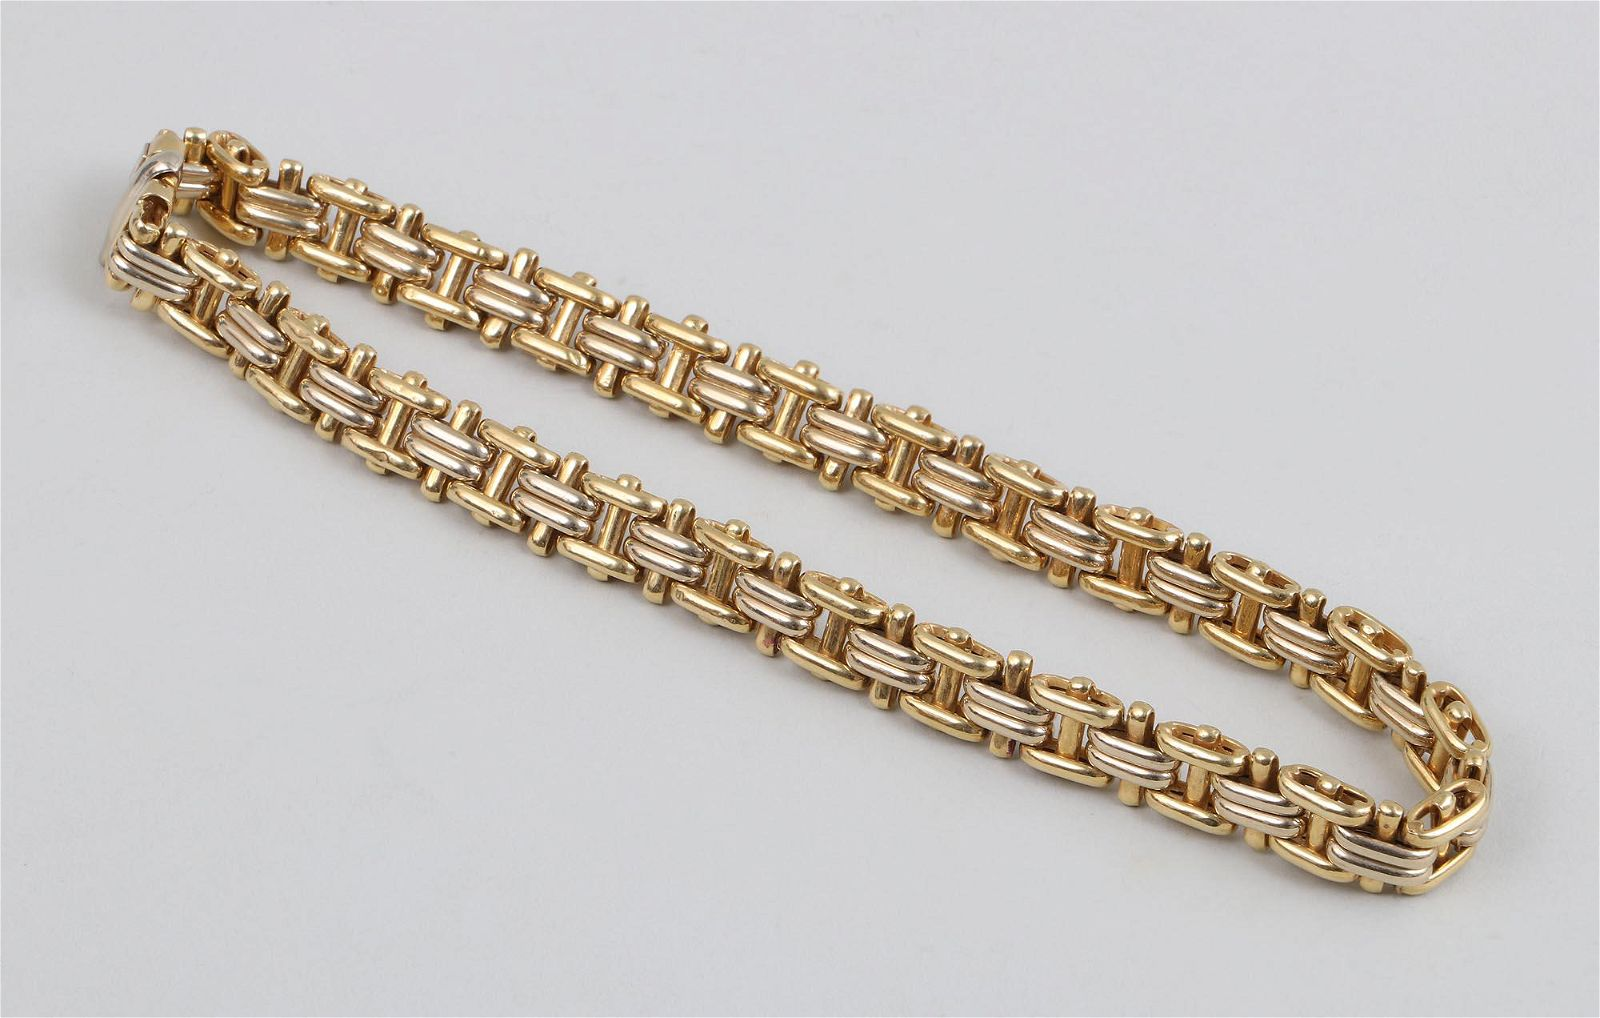 Italian 18k gold link necklace